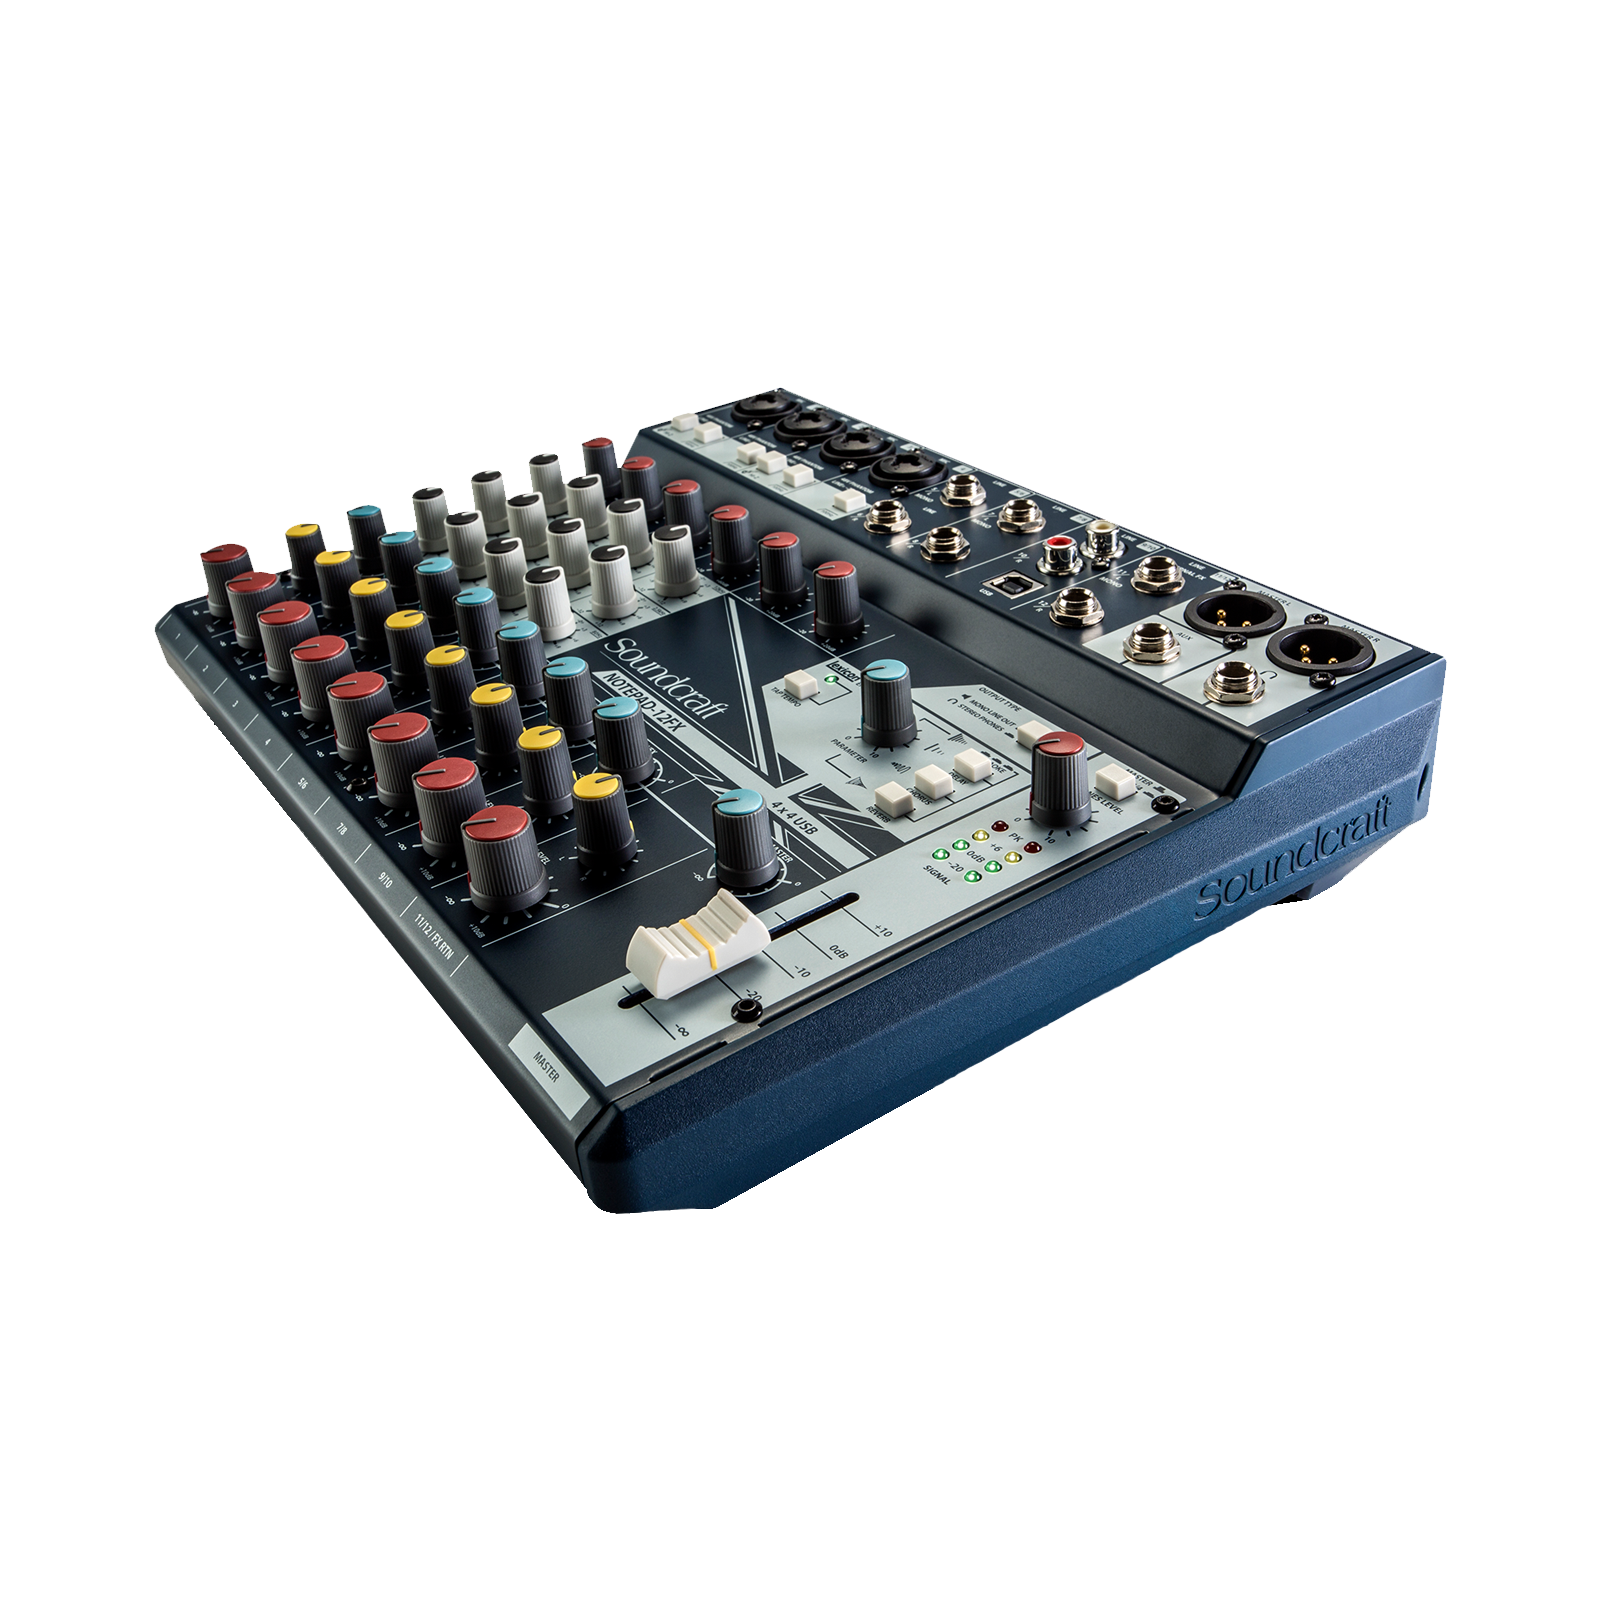 Notepad-12FX - Dark Blue - Small-format analog mixing console with USB I/O and Lexicon effects - Detailshot 1